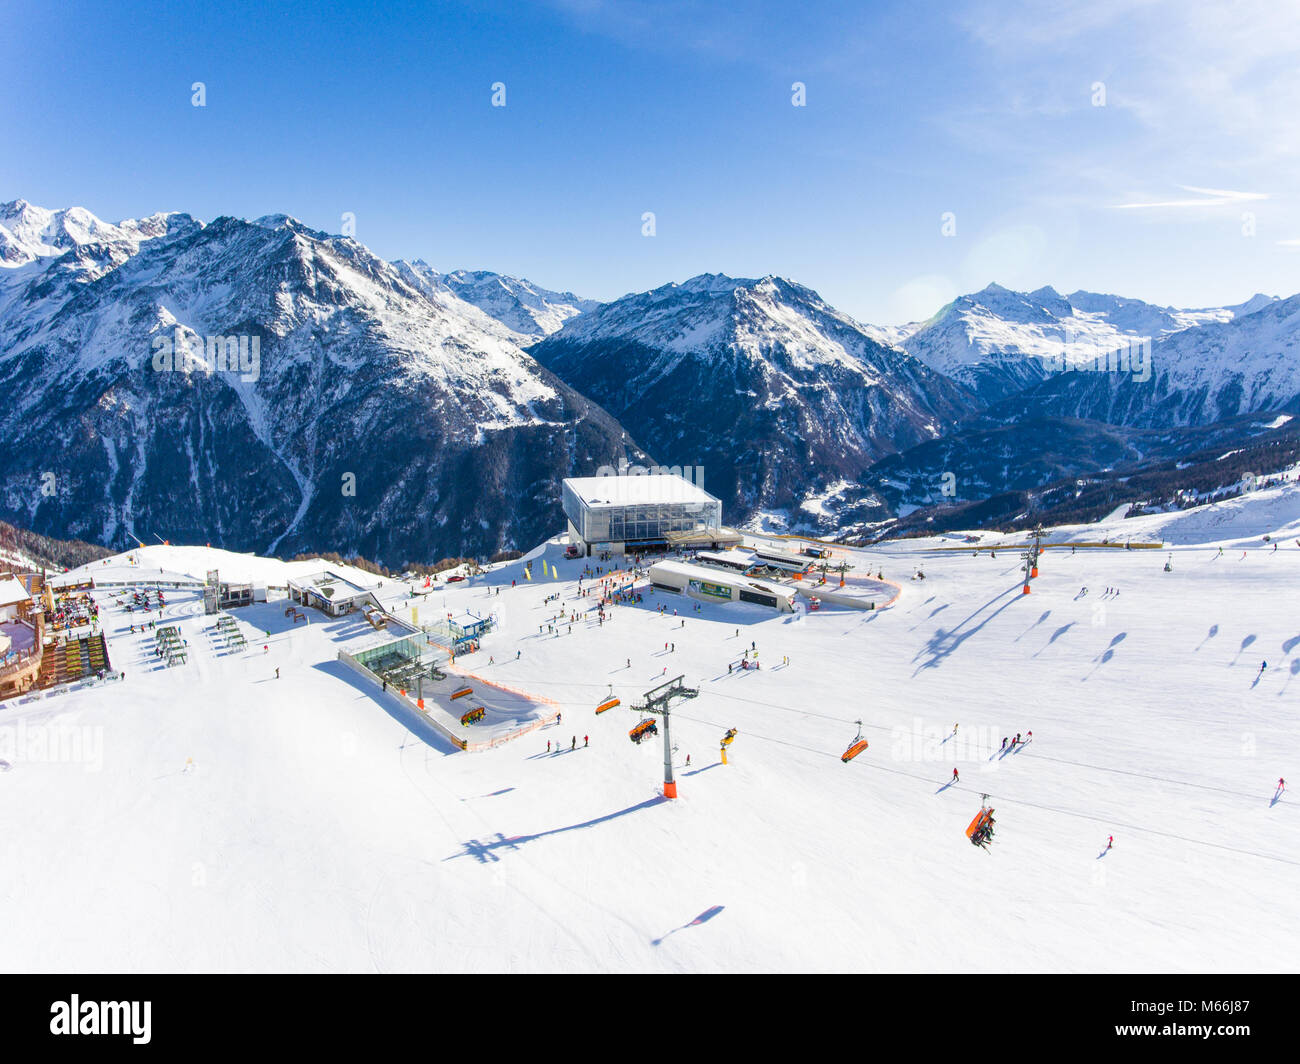 Panoramic aerial view of ski resort in the Alps with ski lift and people skiing on the slope - Stock Image